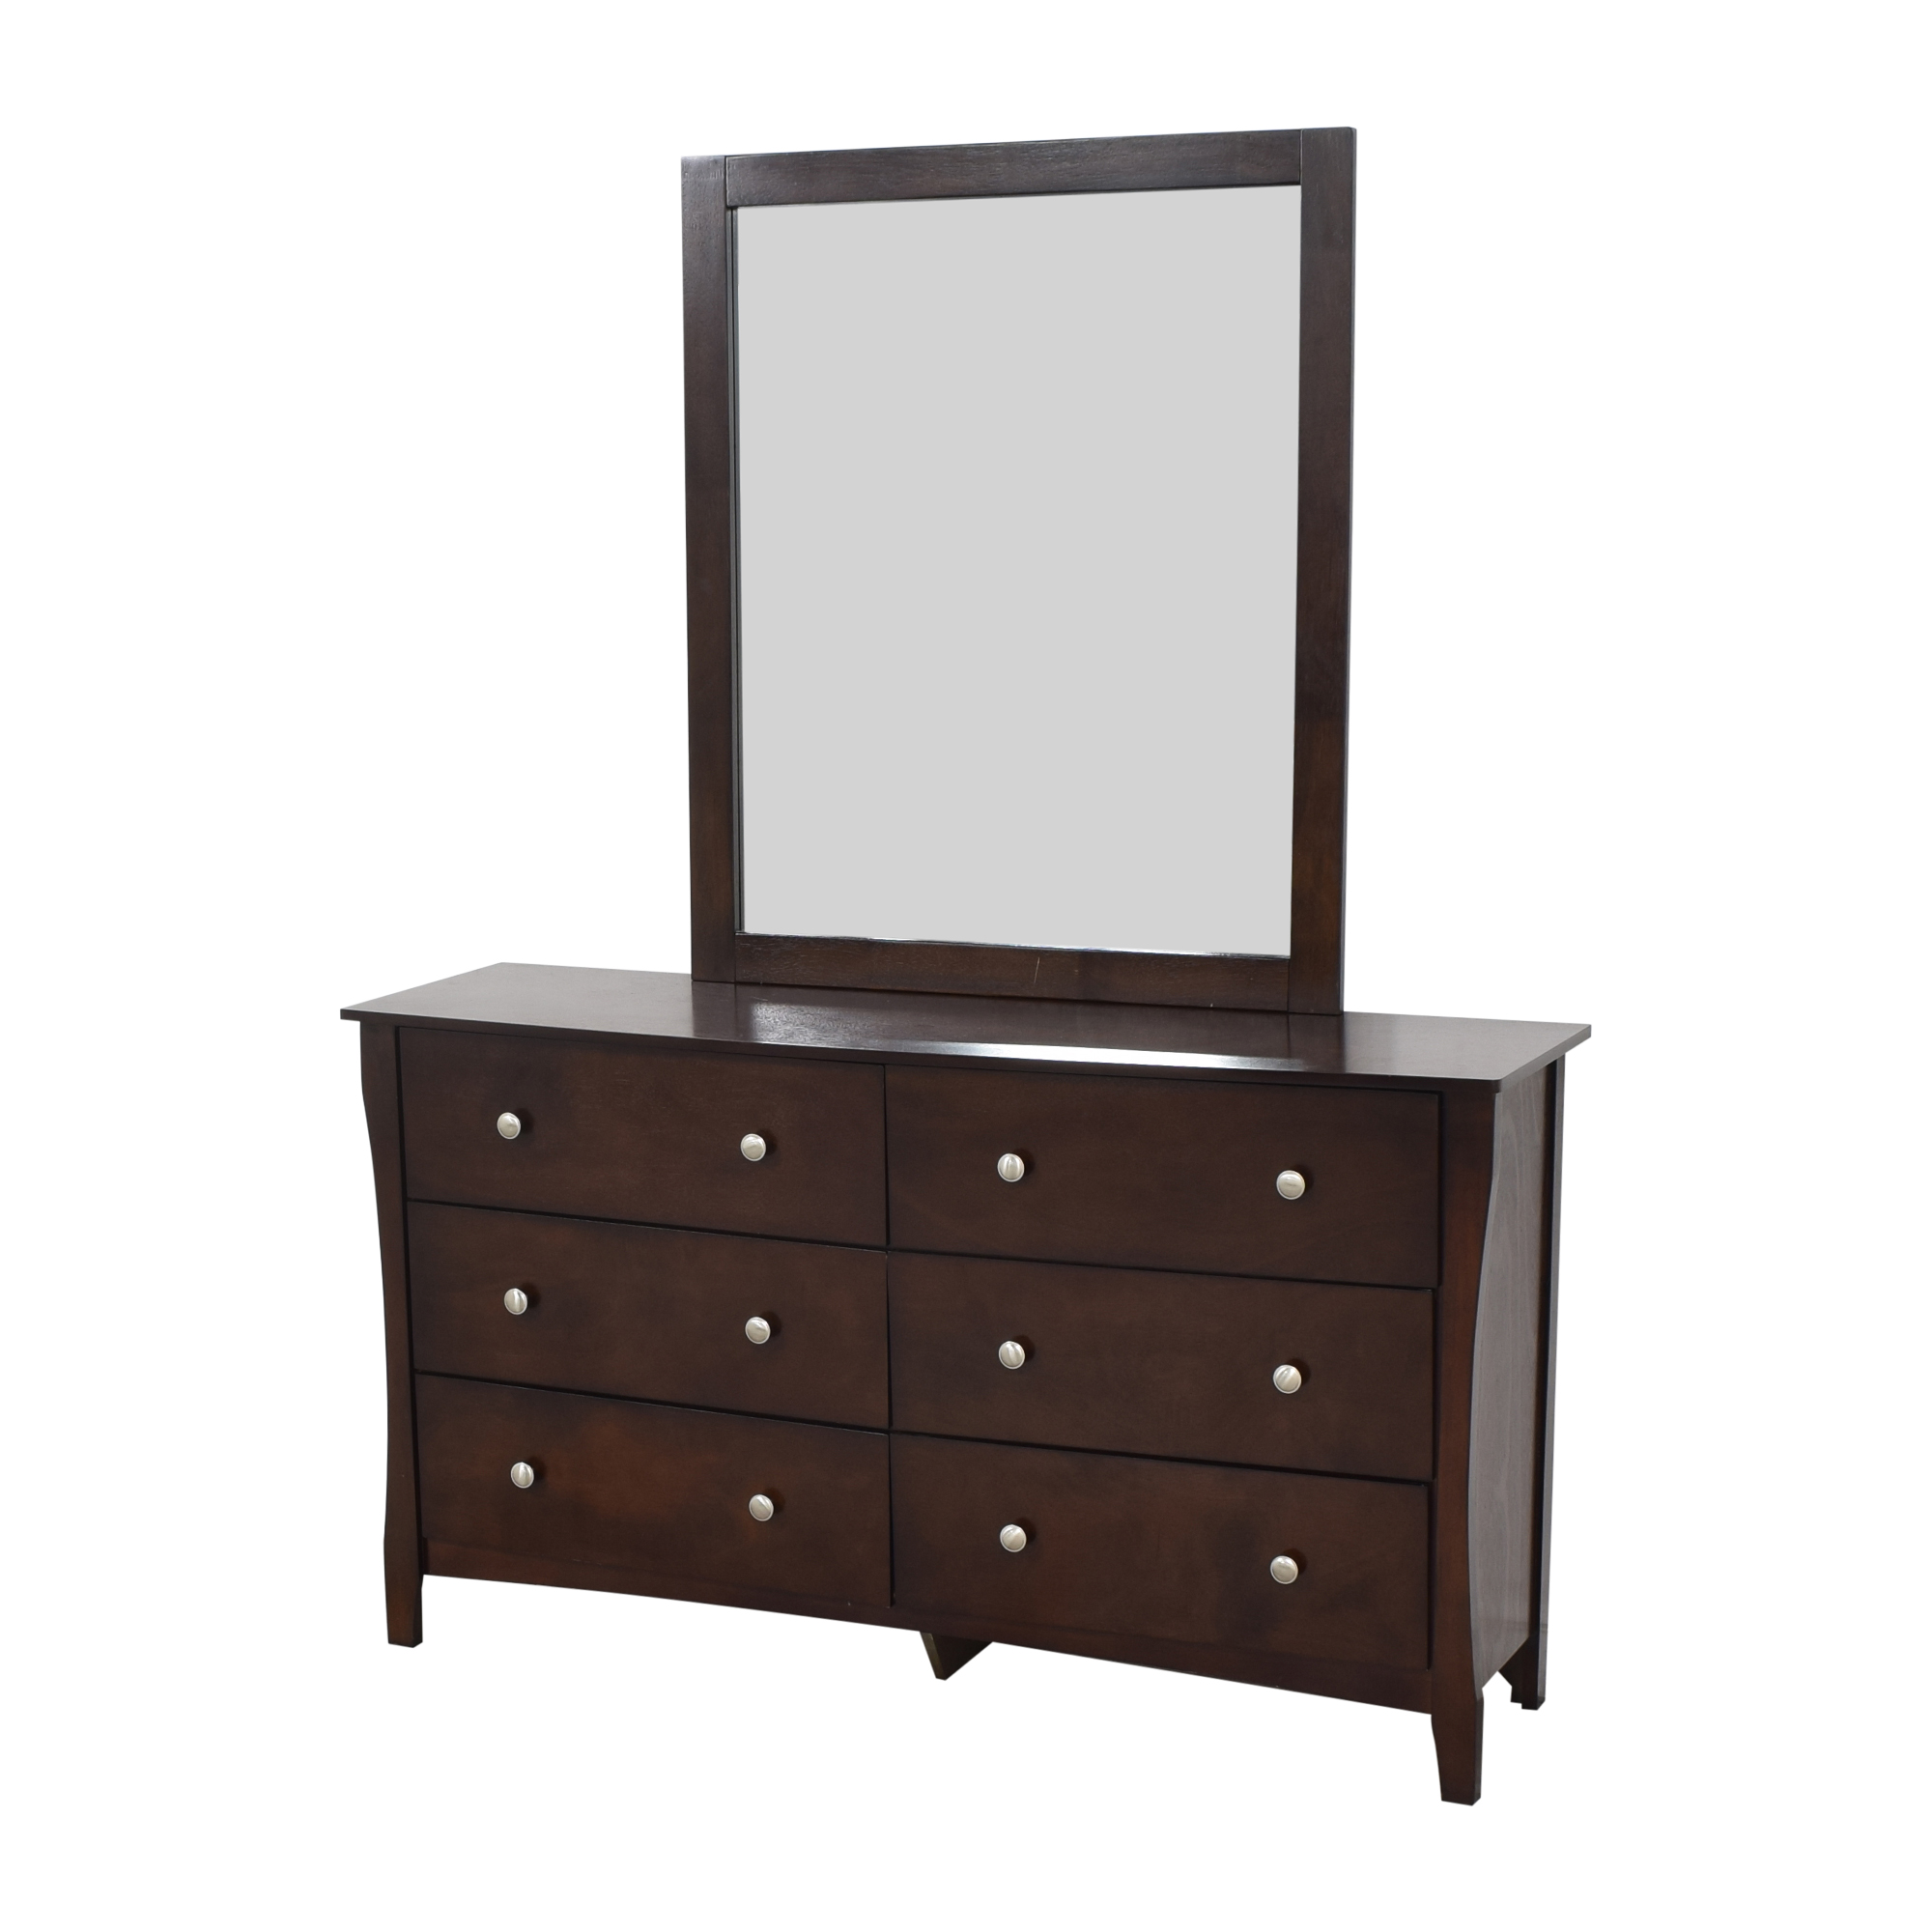 Ashley Furniture Ashley Furniture Rayville Dresser and Mirror on sale